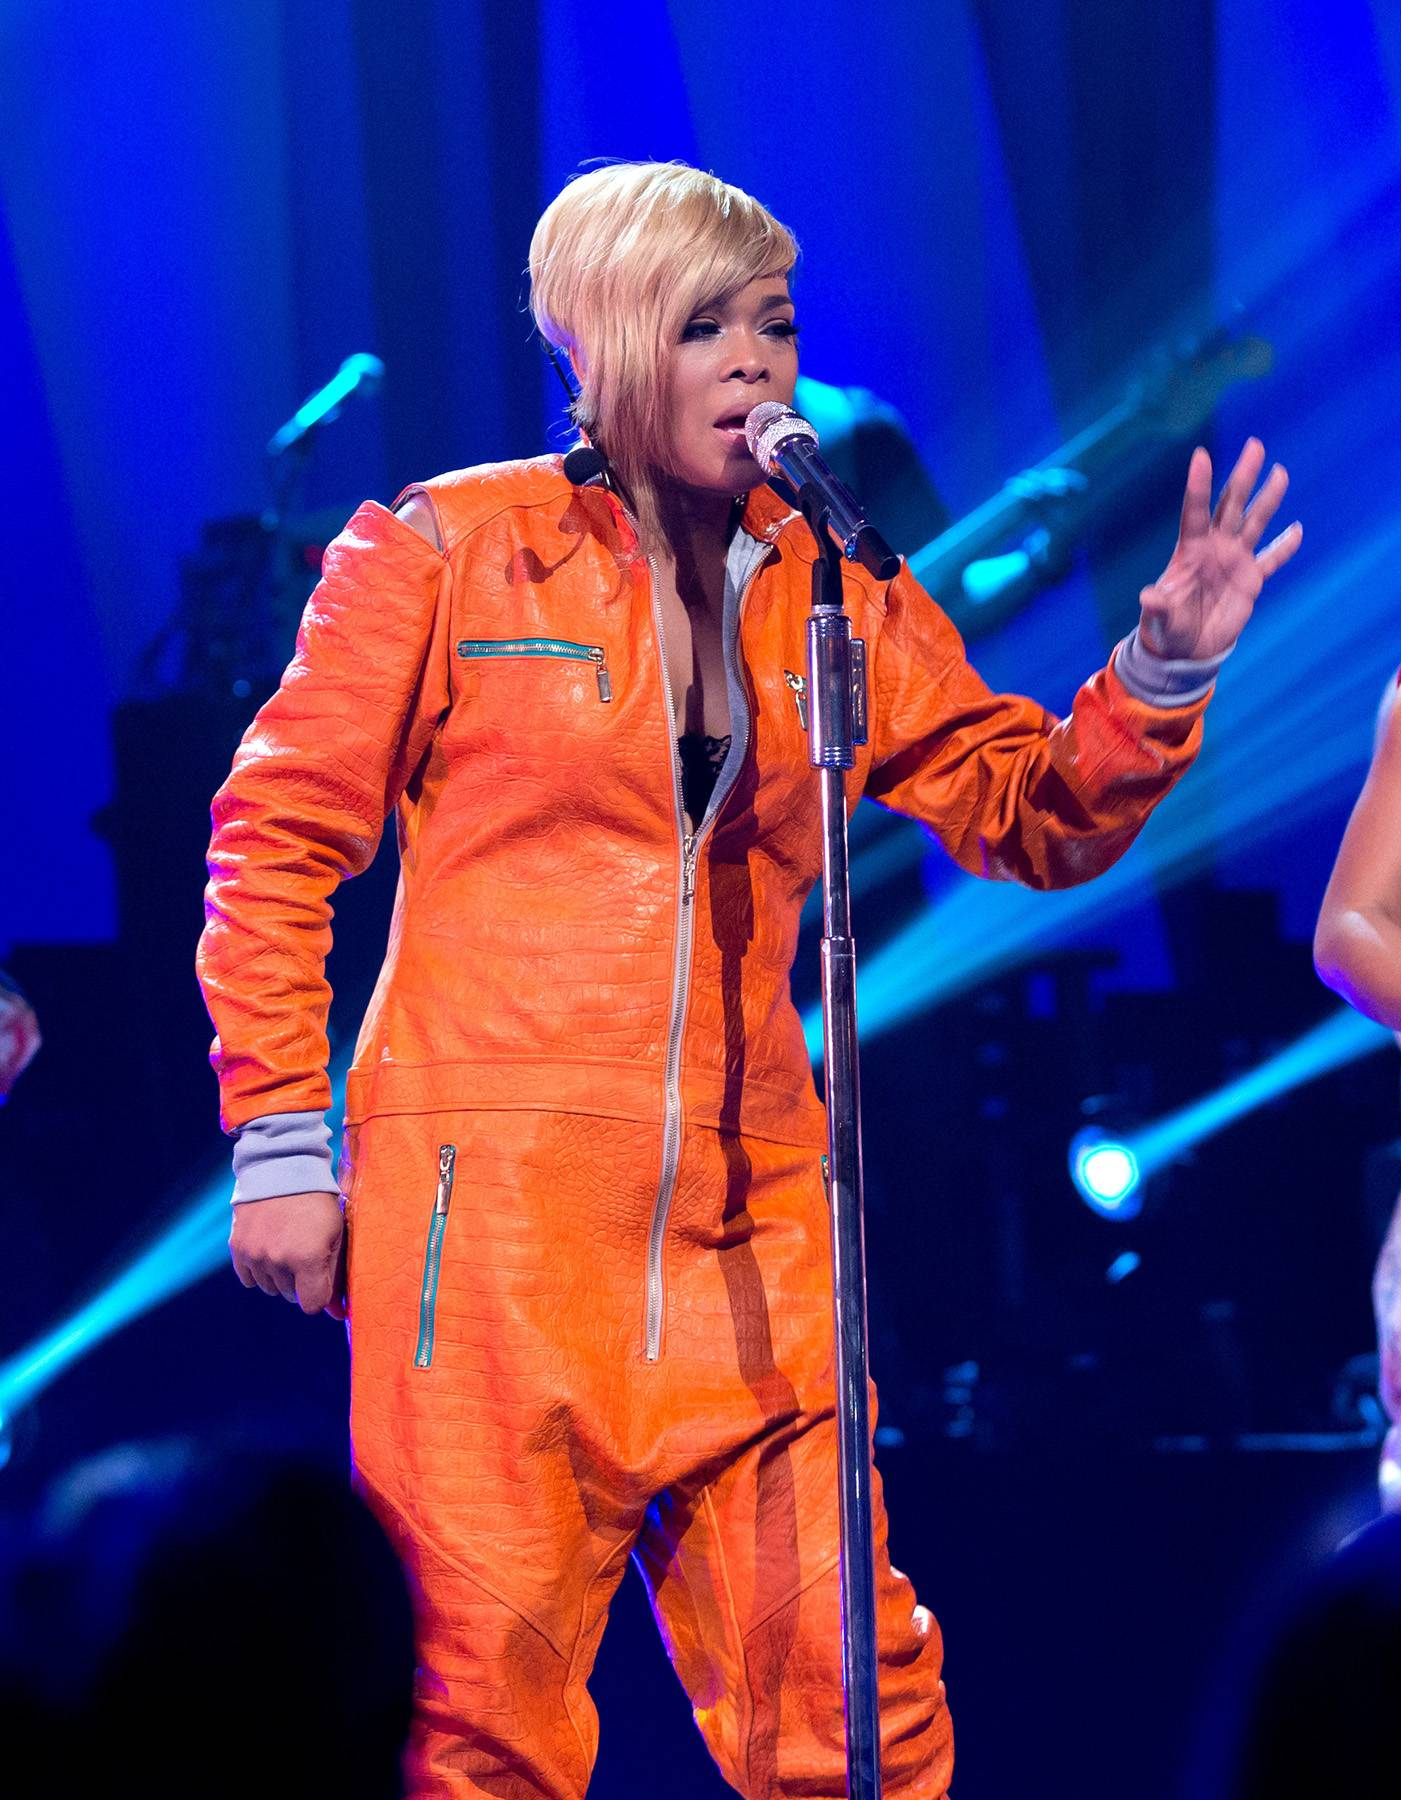 Crazy Sexy Cool  - TLC's T-Boz has gone on a fantastic journey, from being a part of one of the biggest and best girl groups of all-time to producing a VH1 film called CrazySexyCool, about TLC's career and much more. T-Boz still continues to pursue music and keep Left Eye's legacy alive through the art her and Chilli create. (Photo: WENN.com)